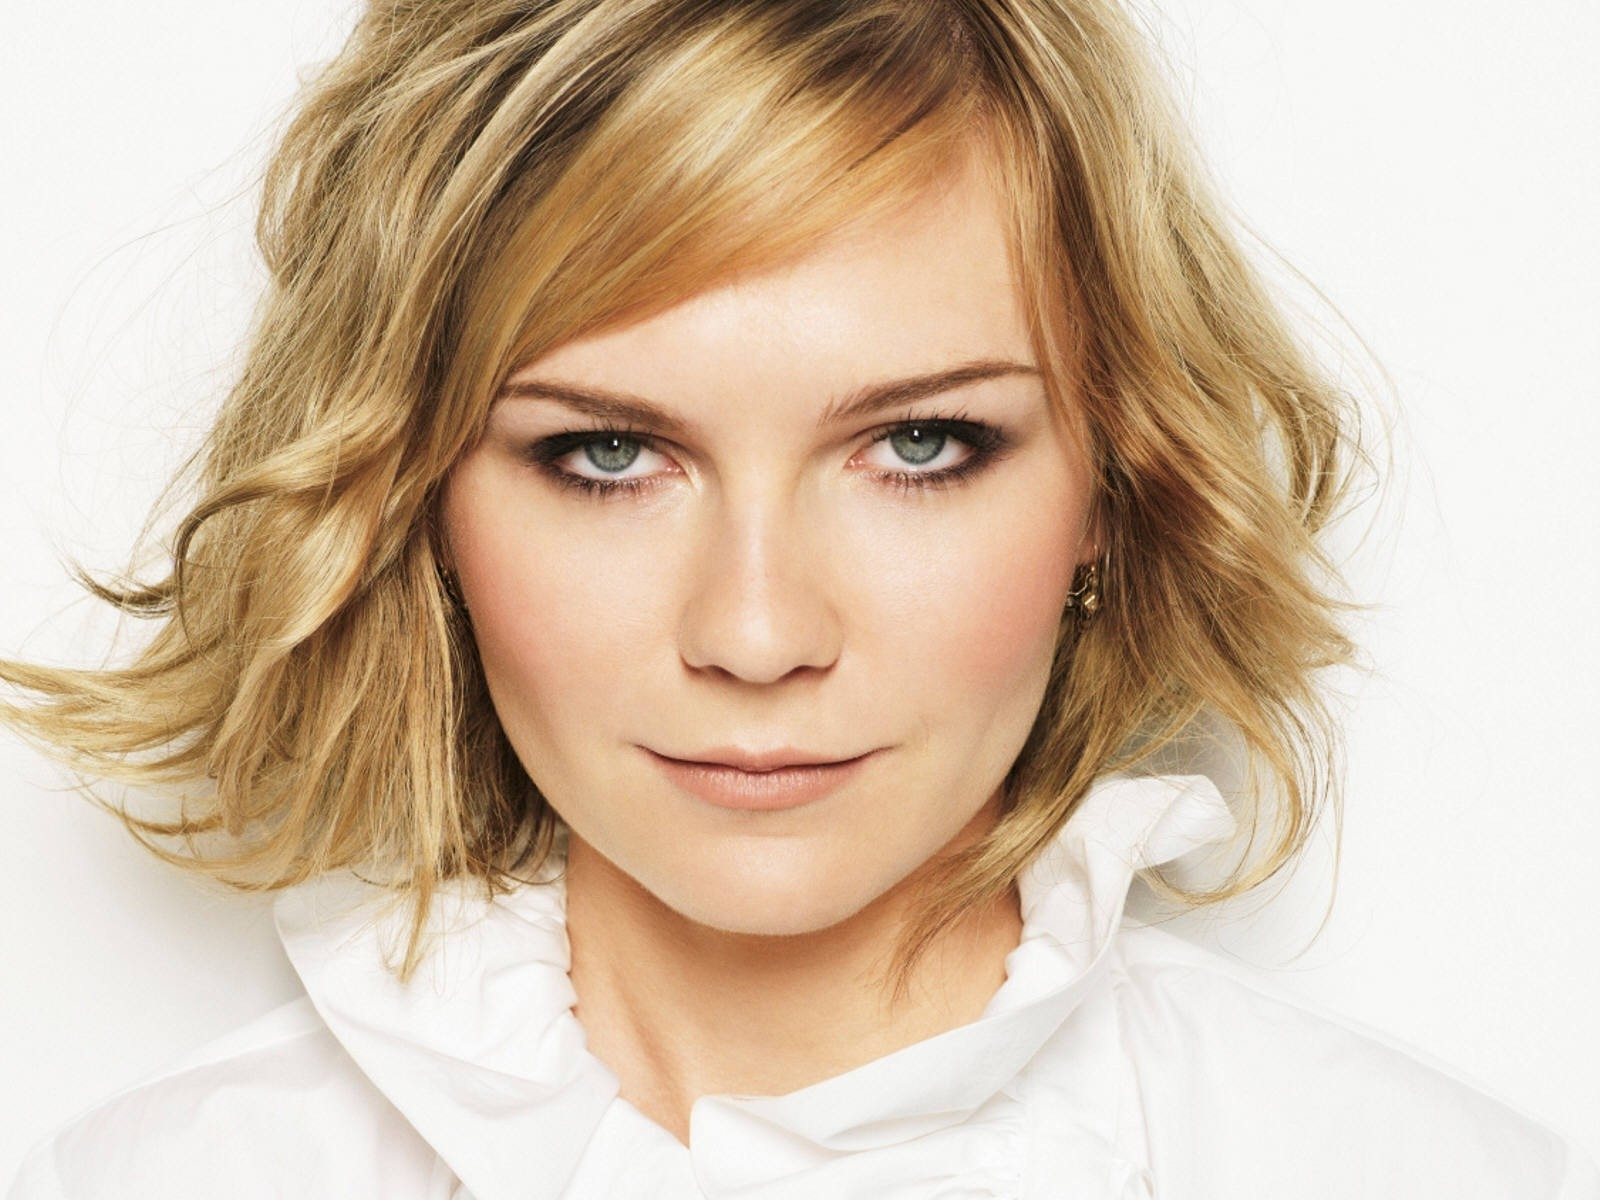 Wallpaper di Kirsten Dunst, splendida come sempre